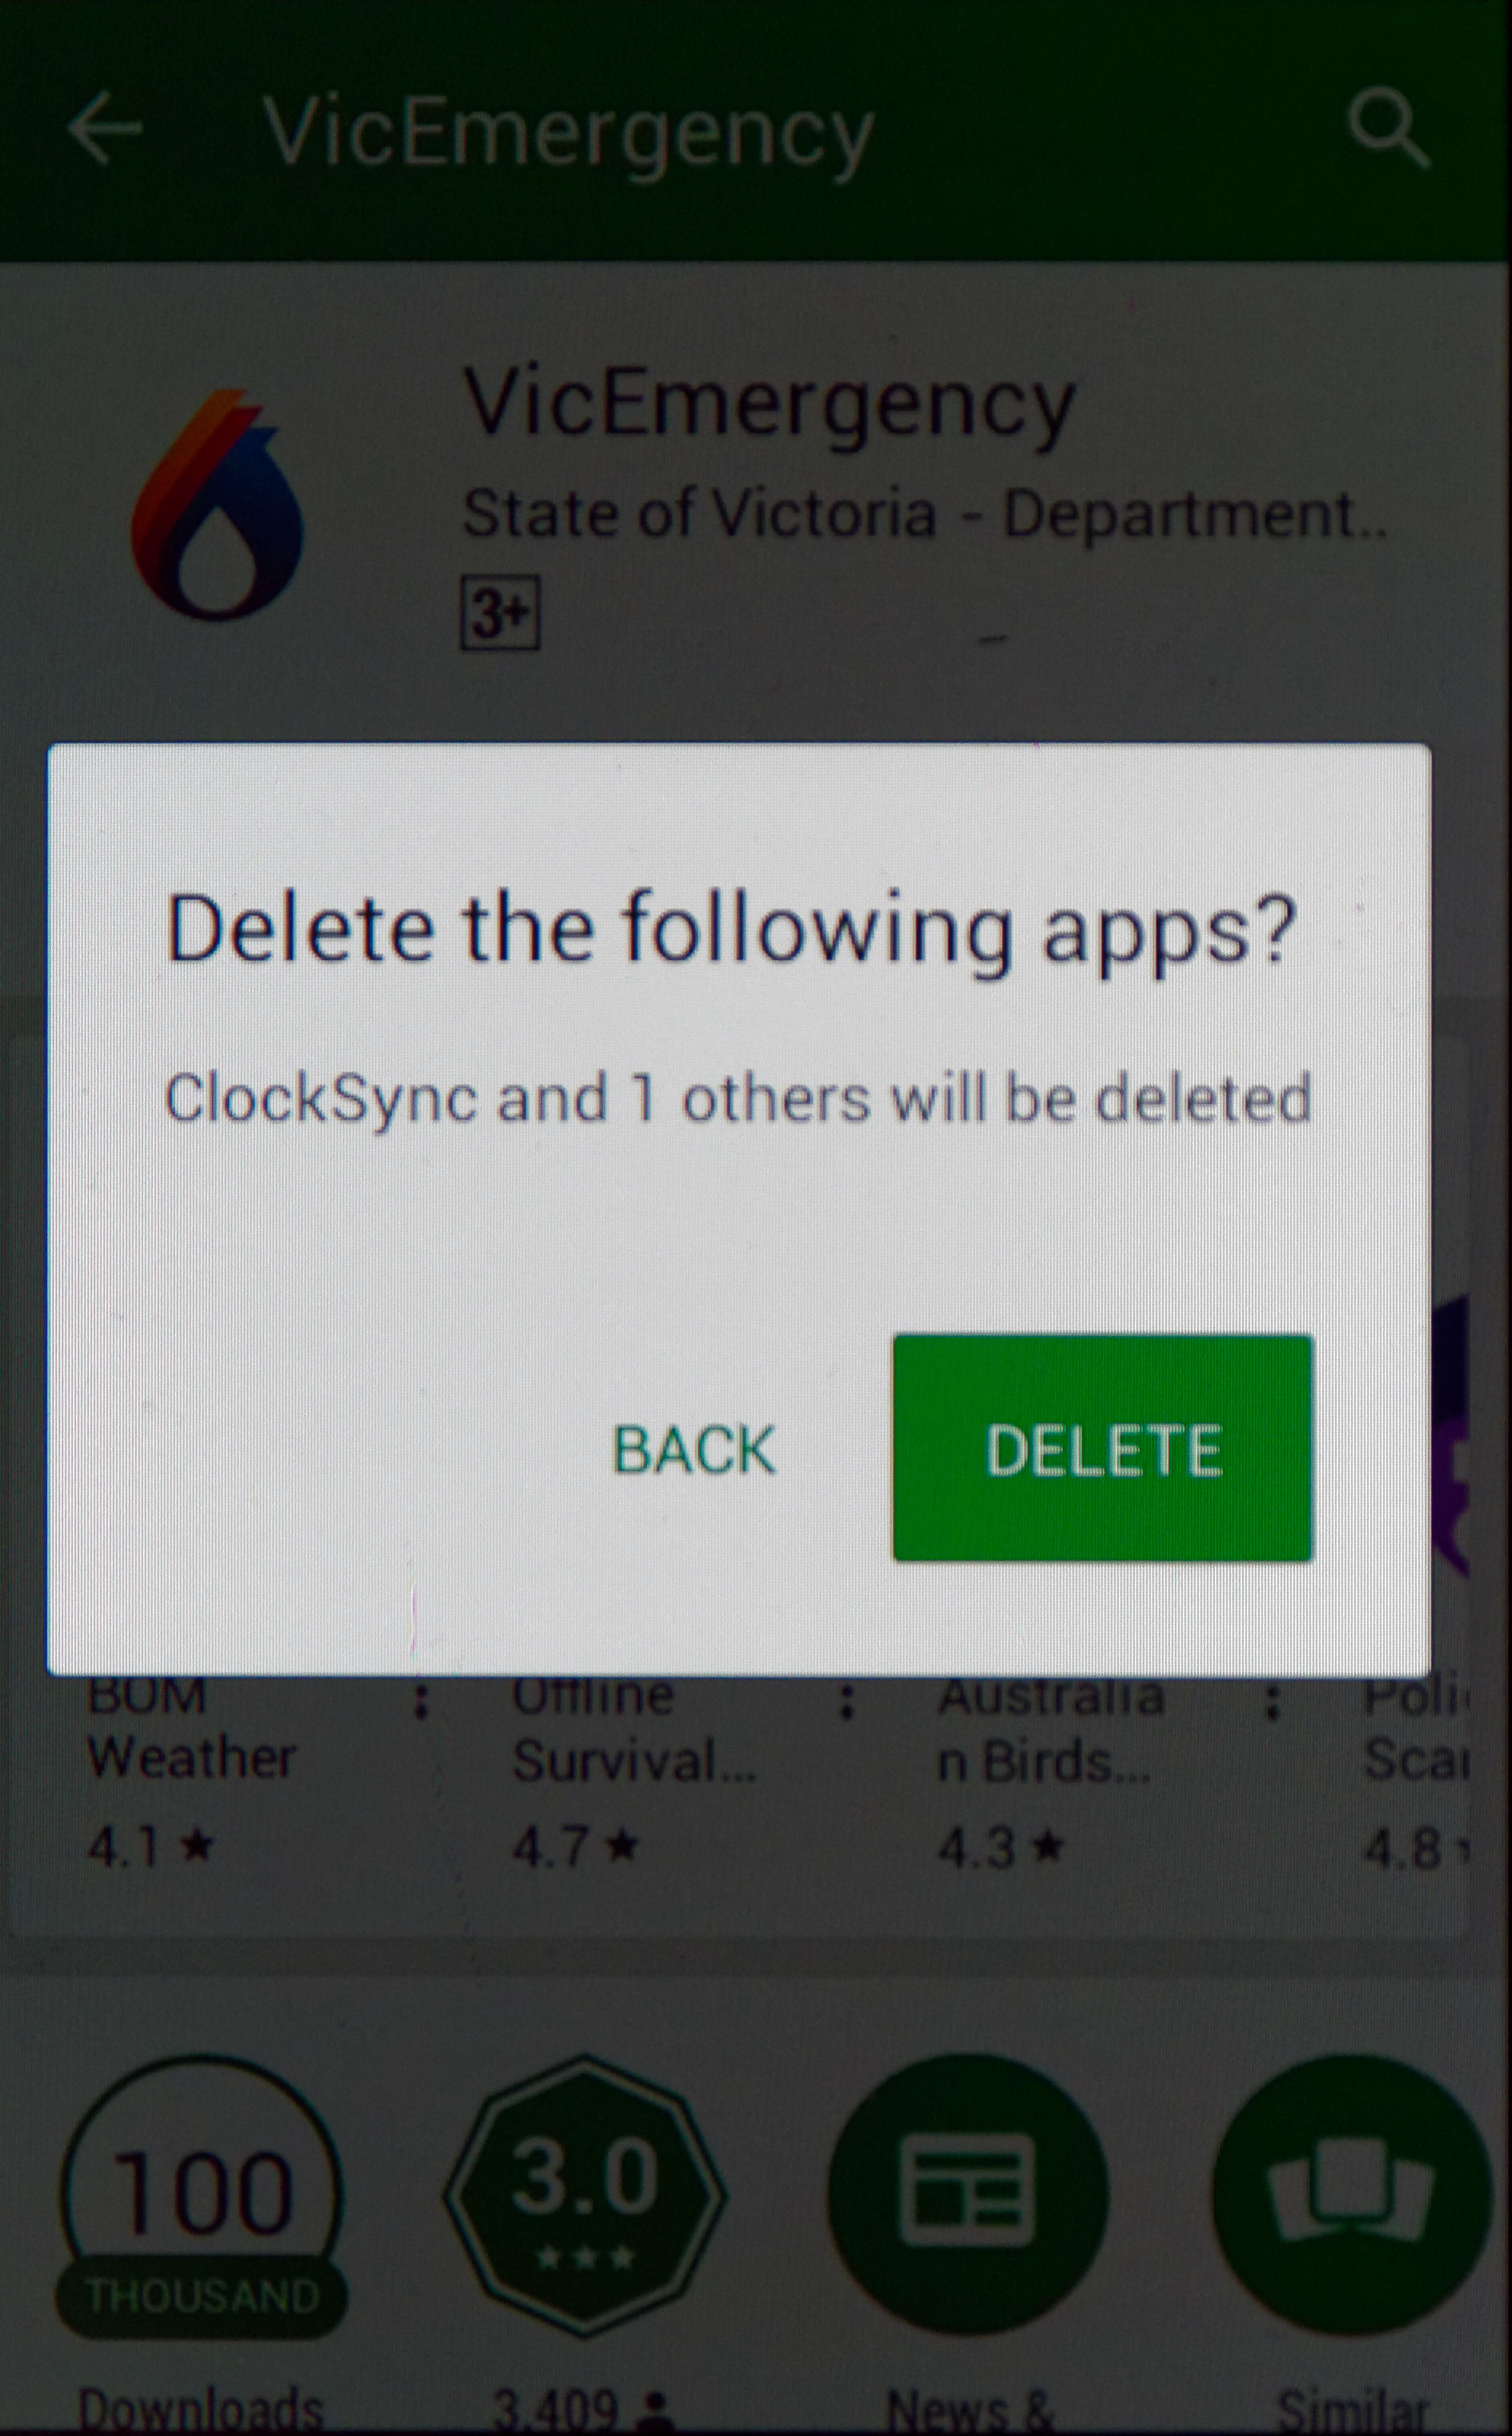 VicEmergency-app-4.jpeg